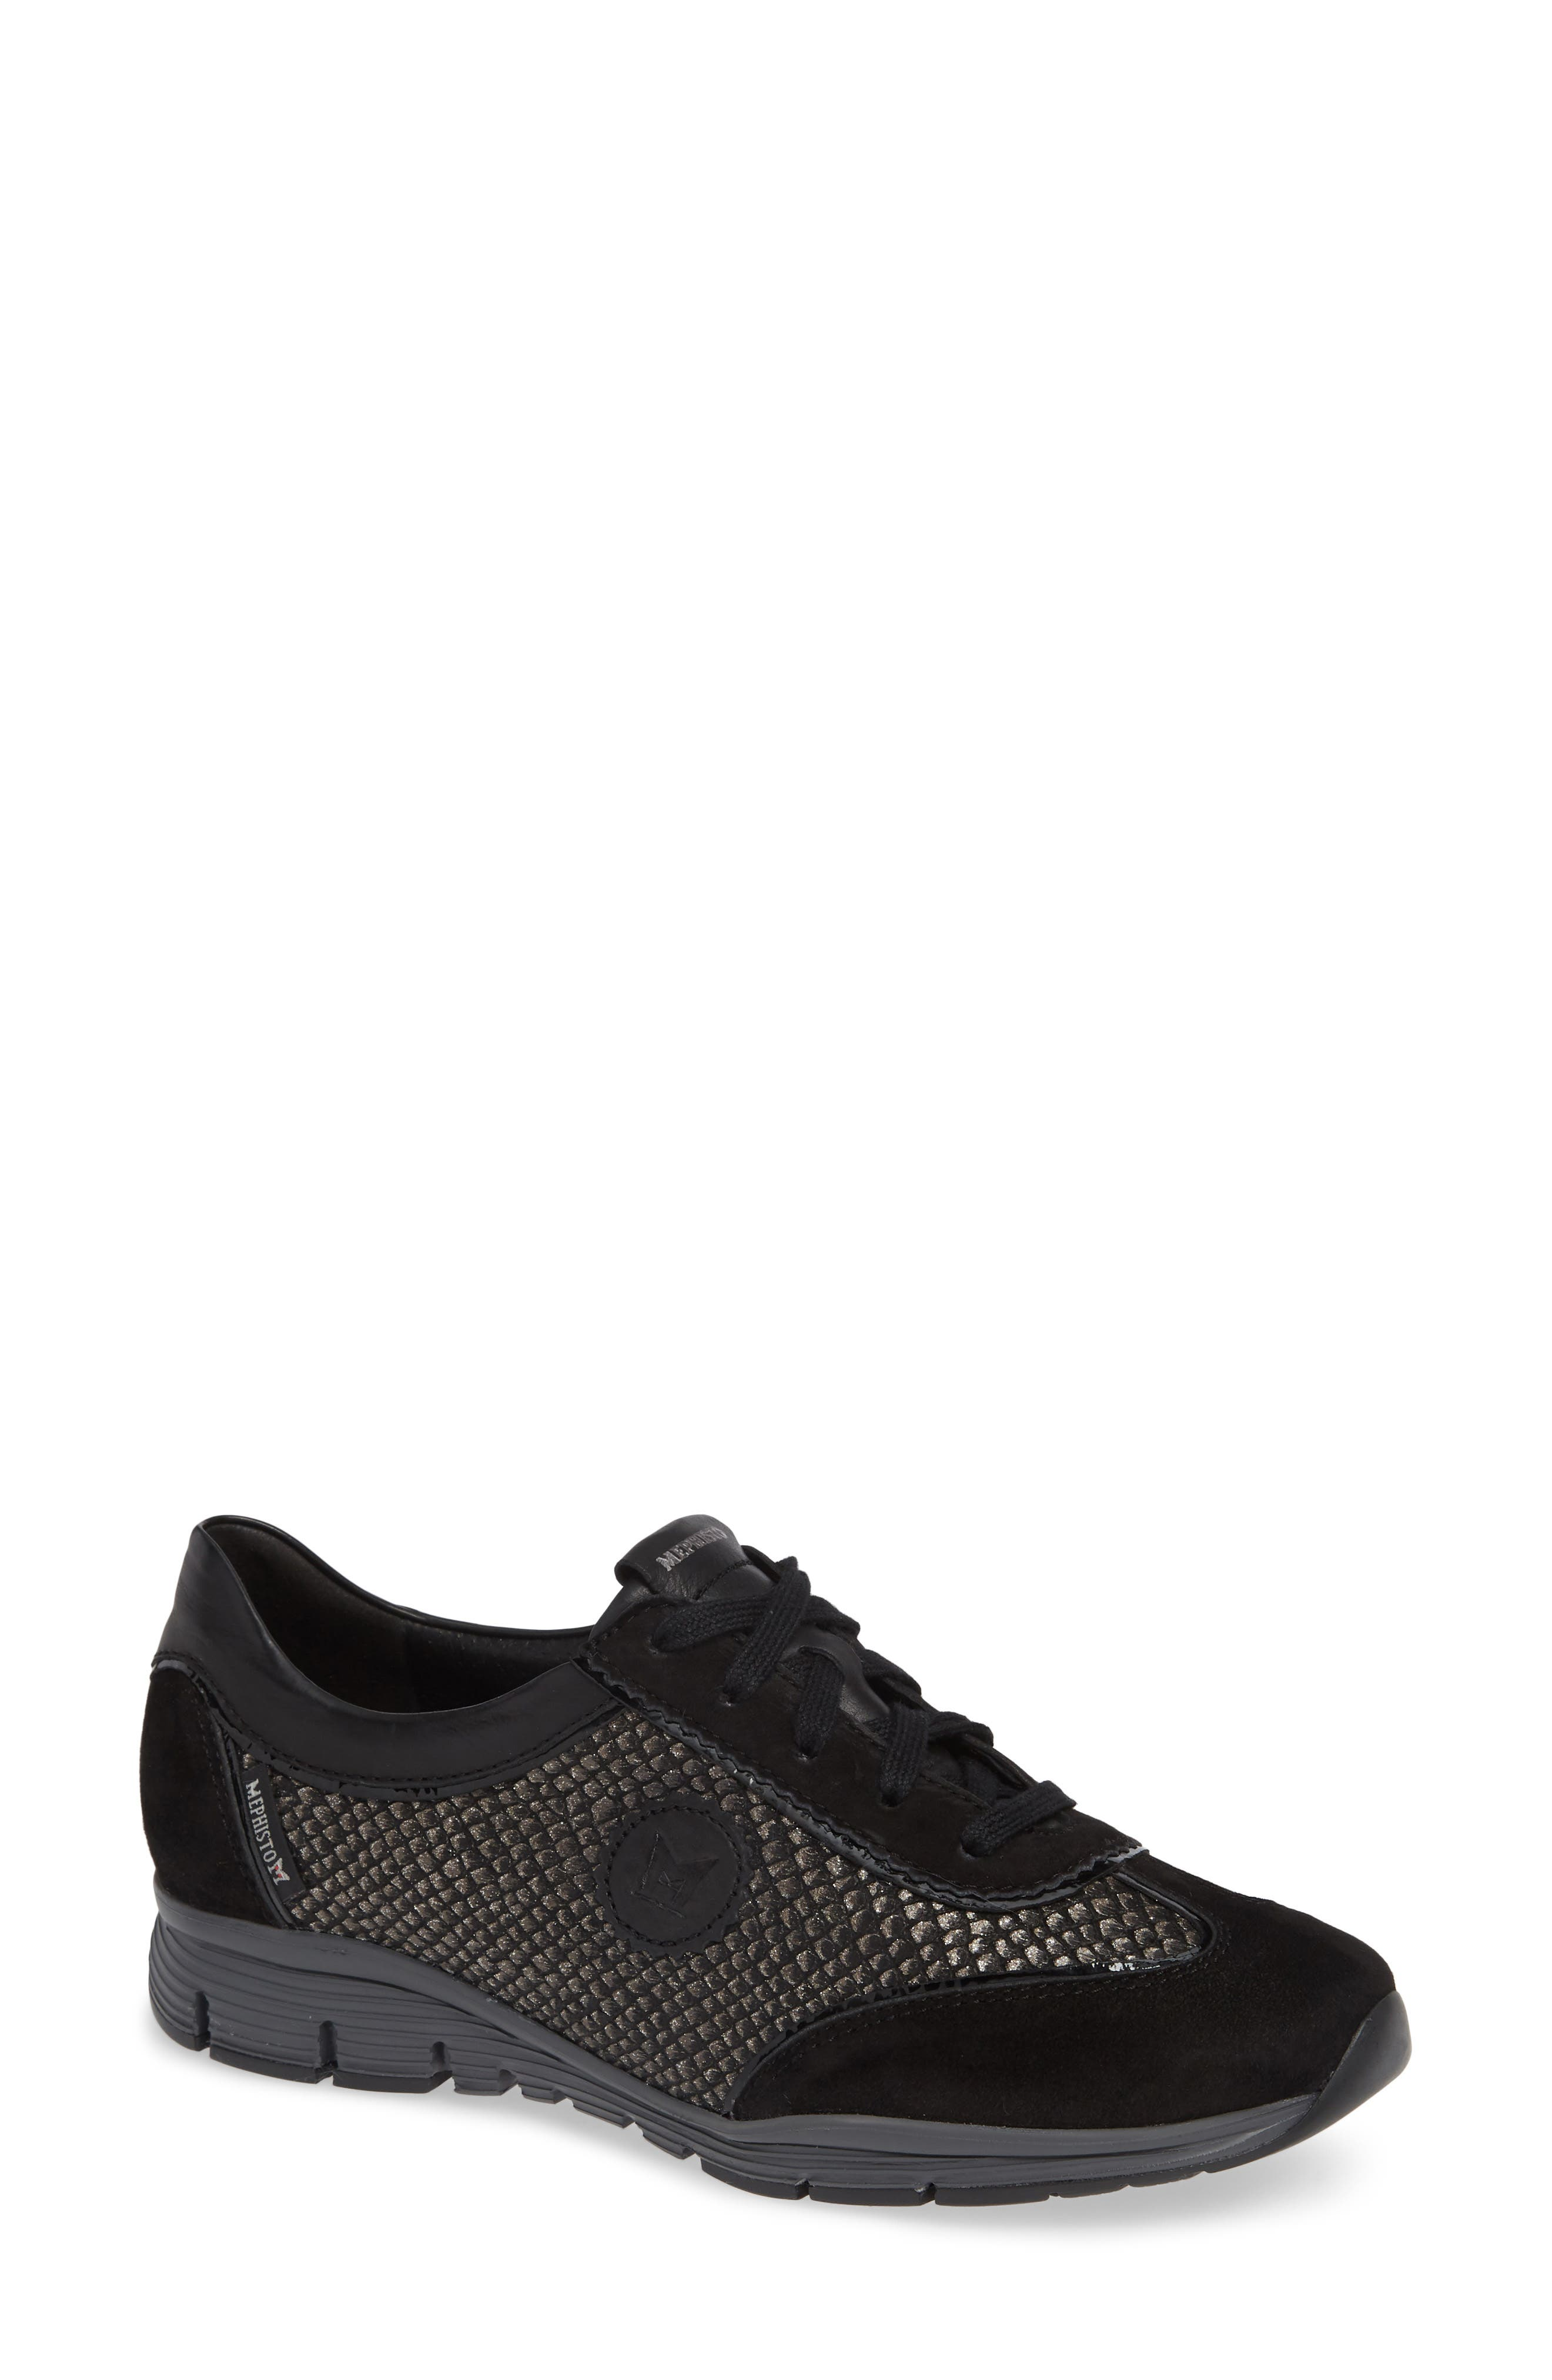 MEPHISTO, 'Yael' Soft-Air Sneaker, Main thumbnail 1, color, BLACK SUEDE